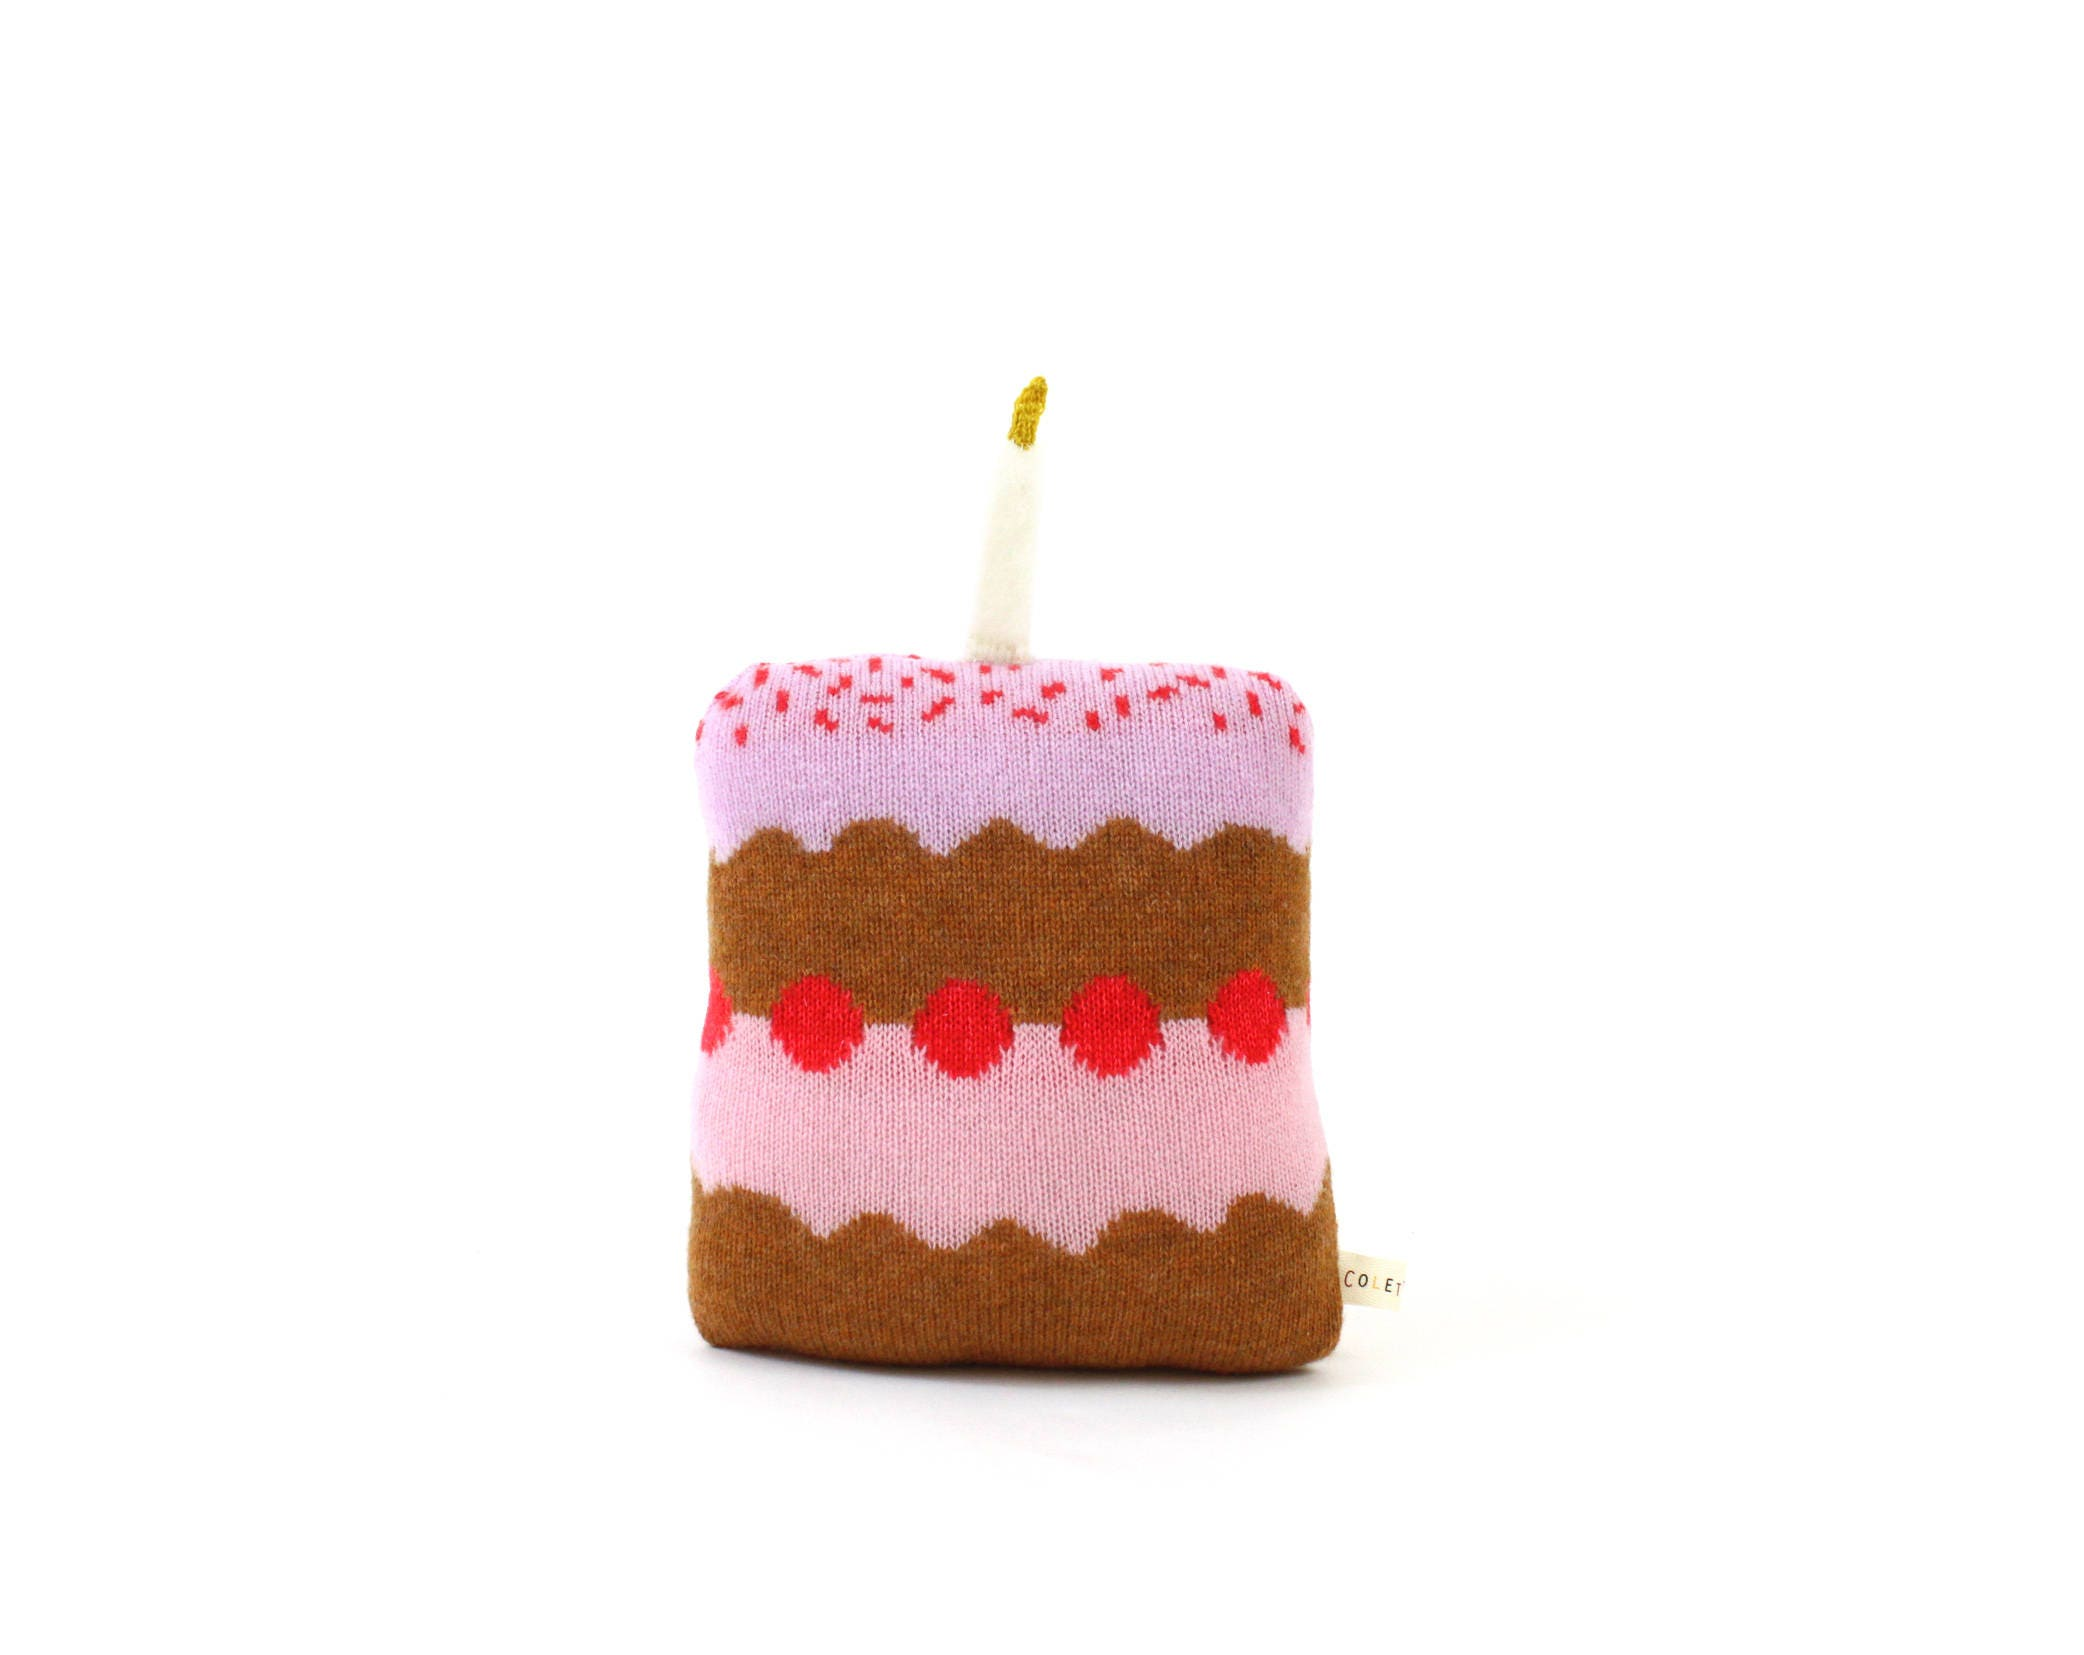 Birthday Cake Pillow Soft Knitted Lambswool Cushion Cake Etsy